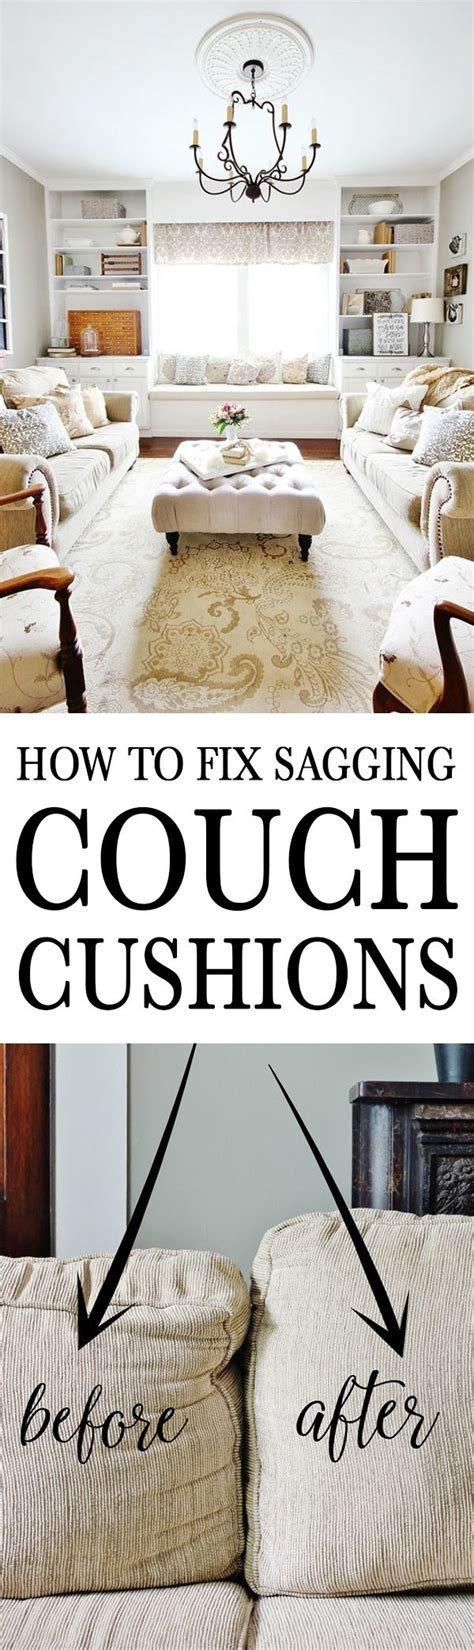 how to fix a couch cushion how to fix sagging couch cushions home decorating diy ideas